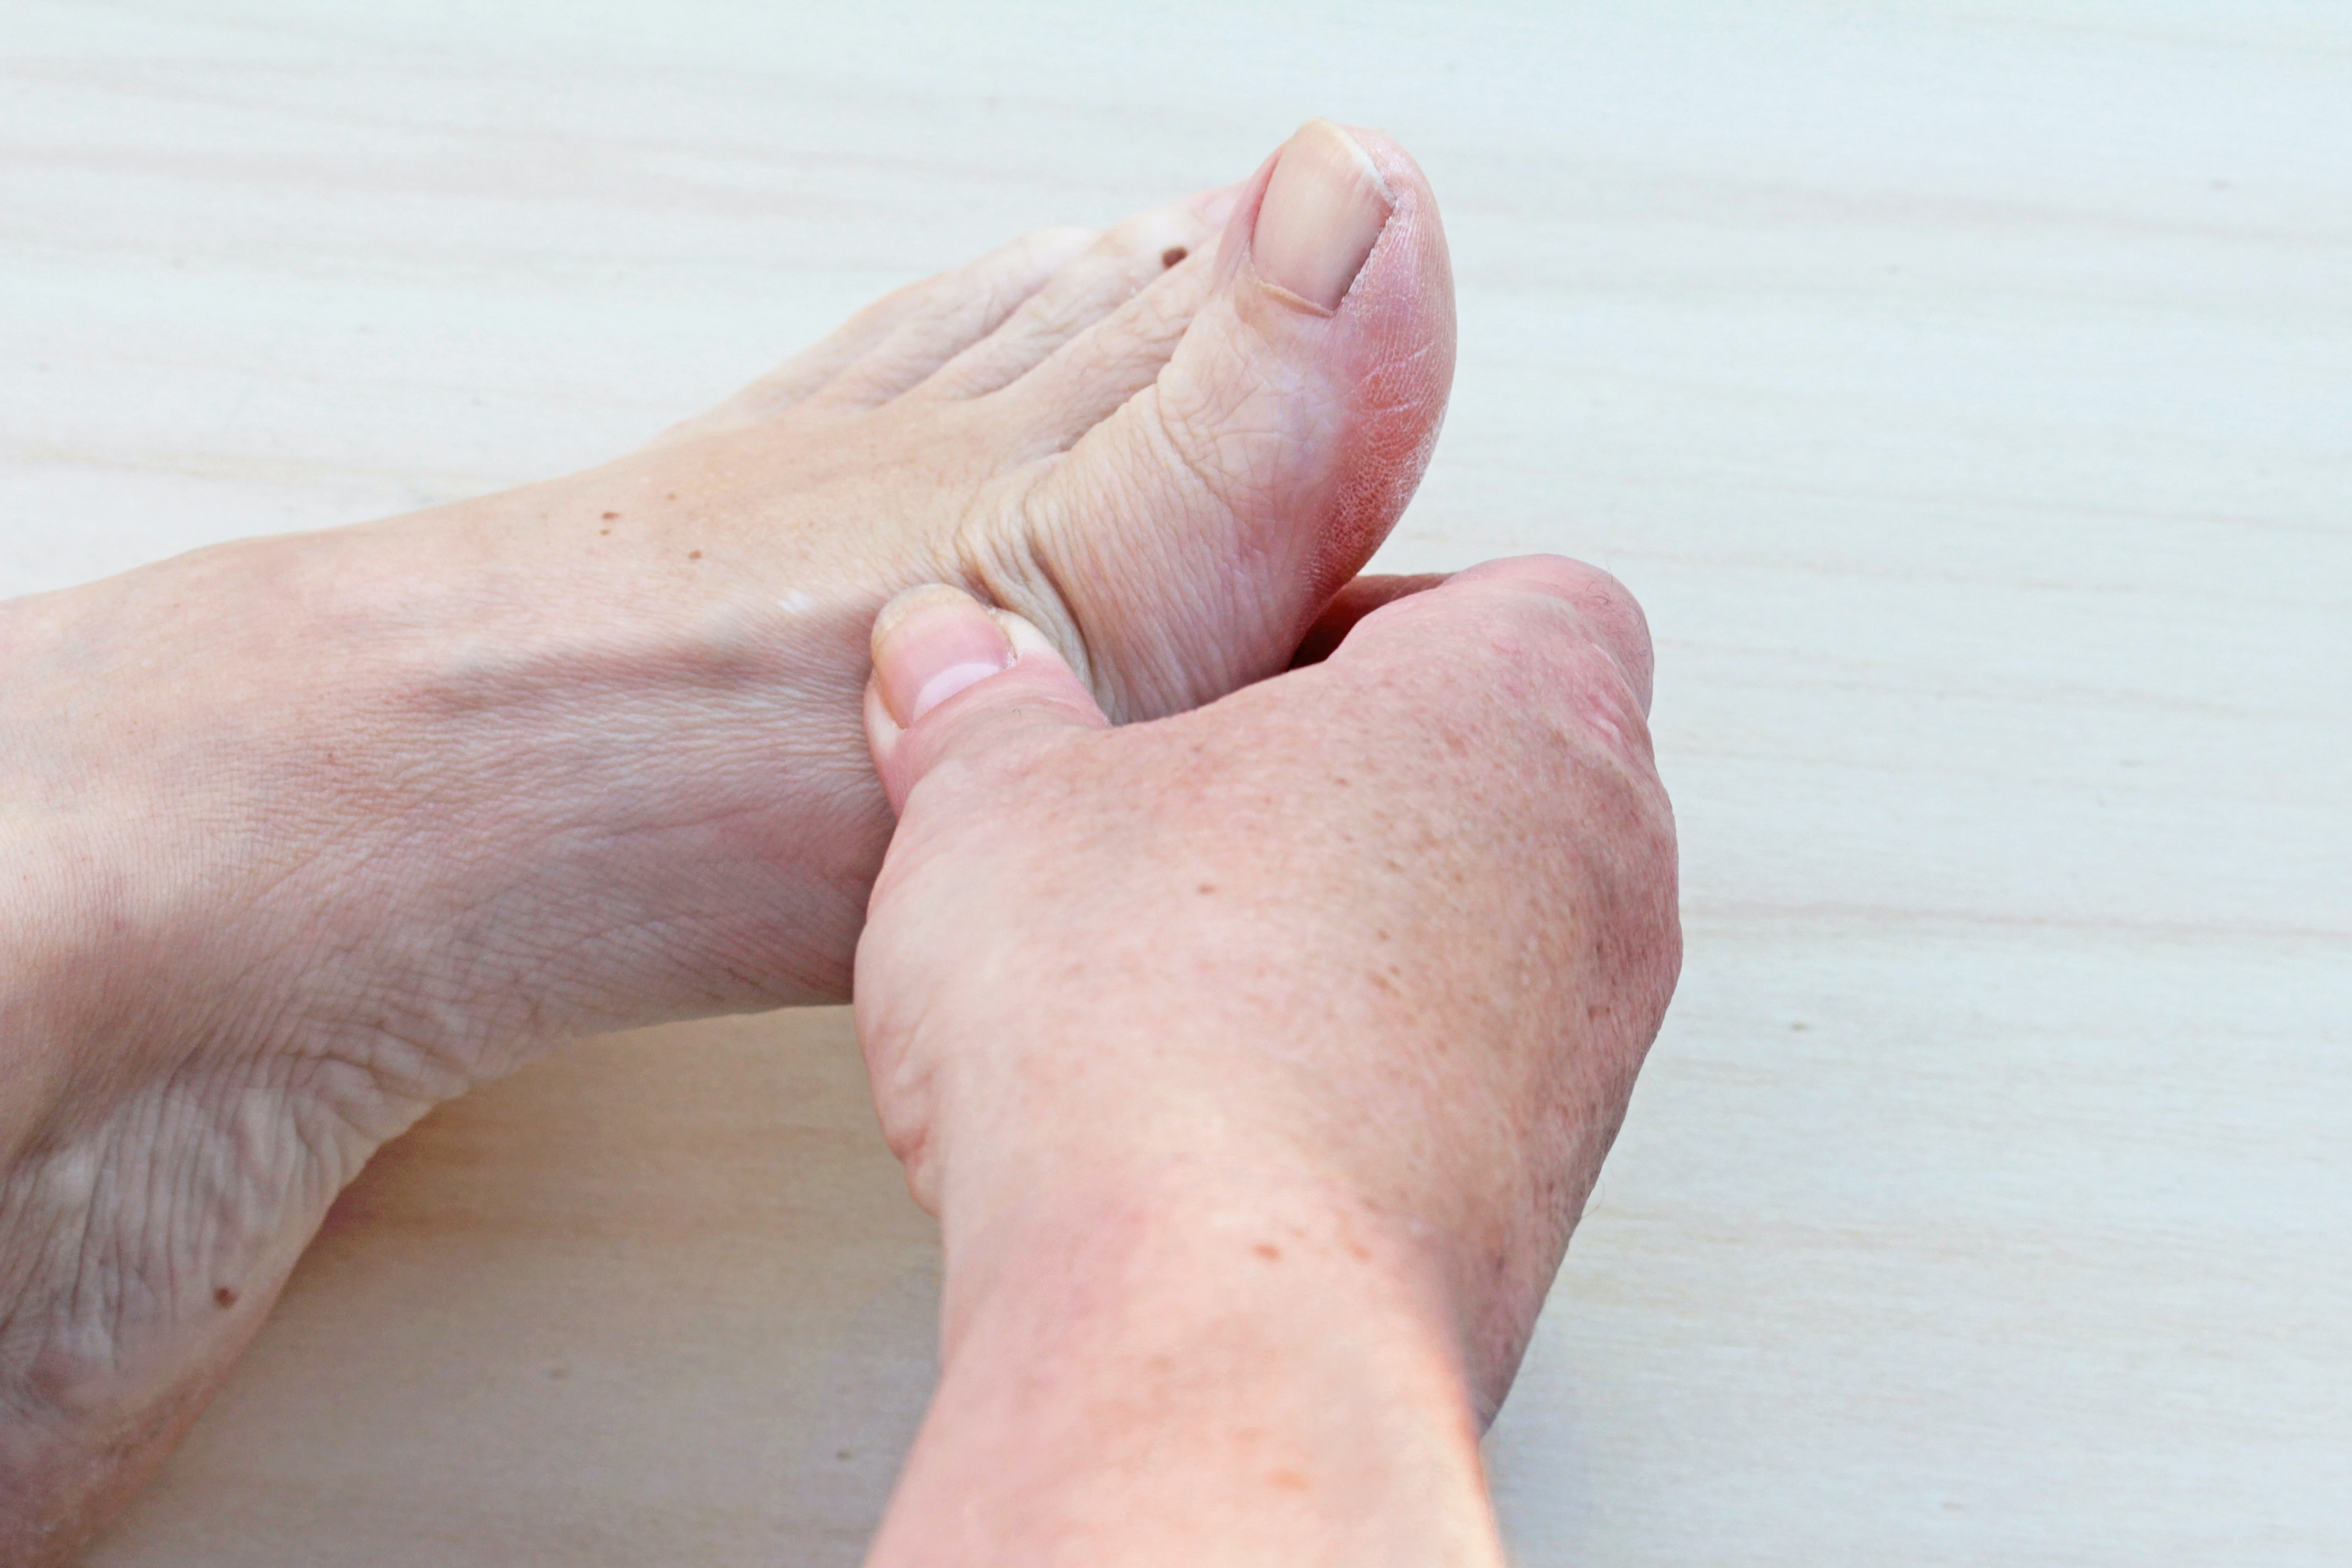 An image depicting a person suffering from painful foot lump symptoms